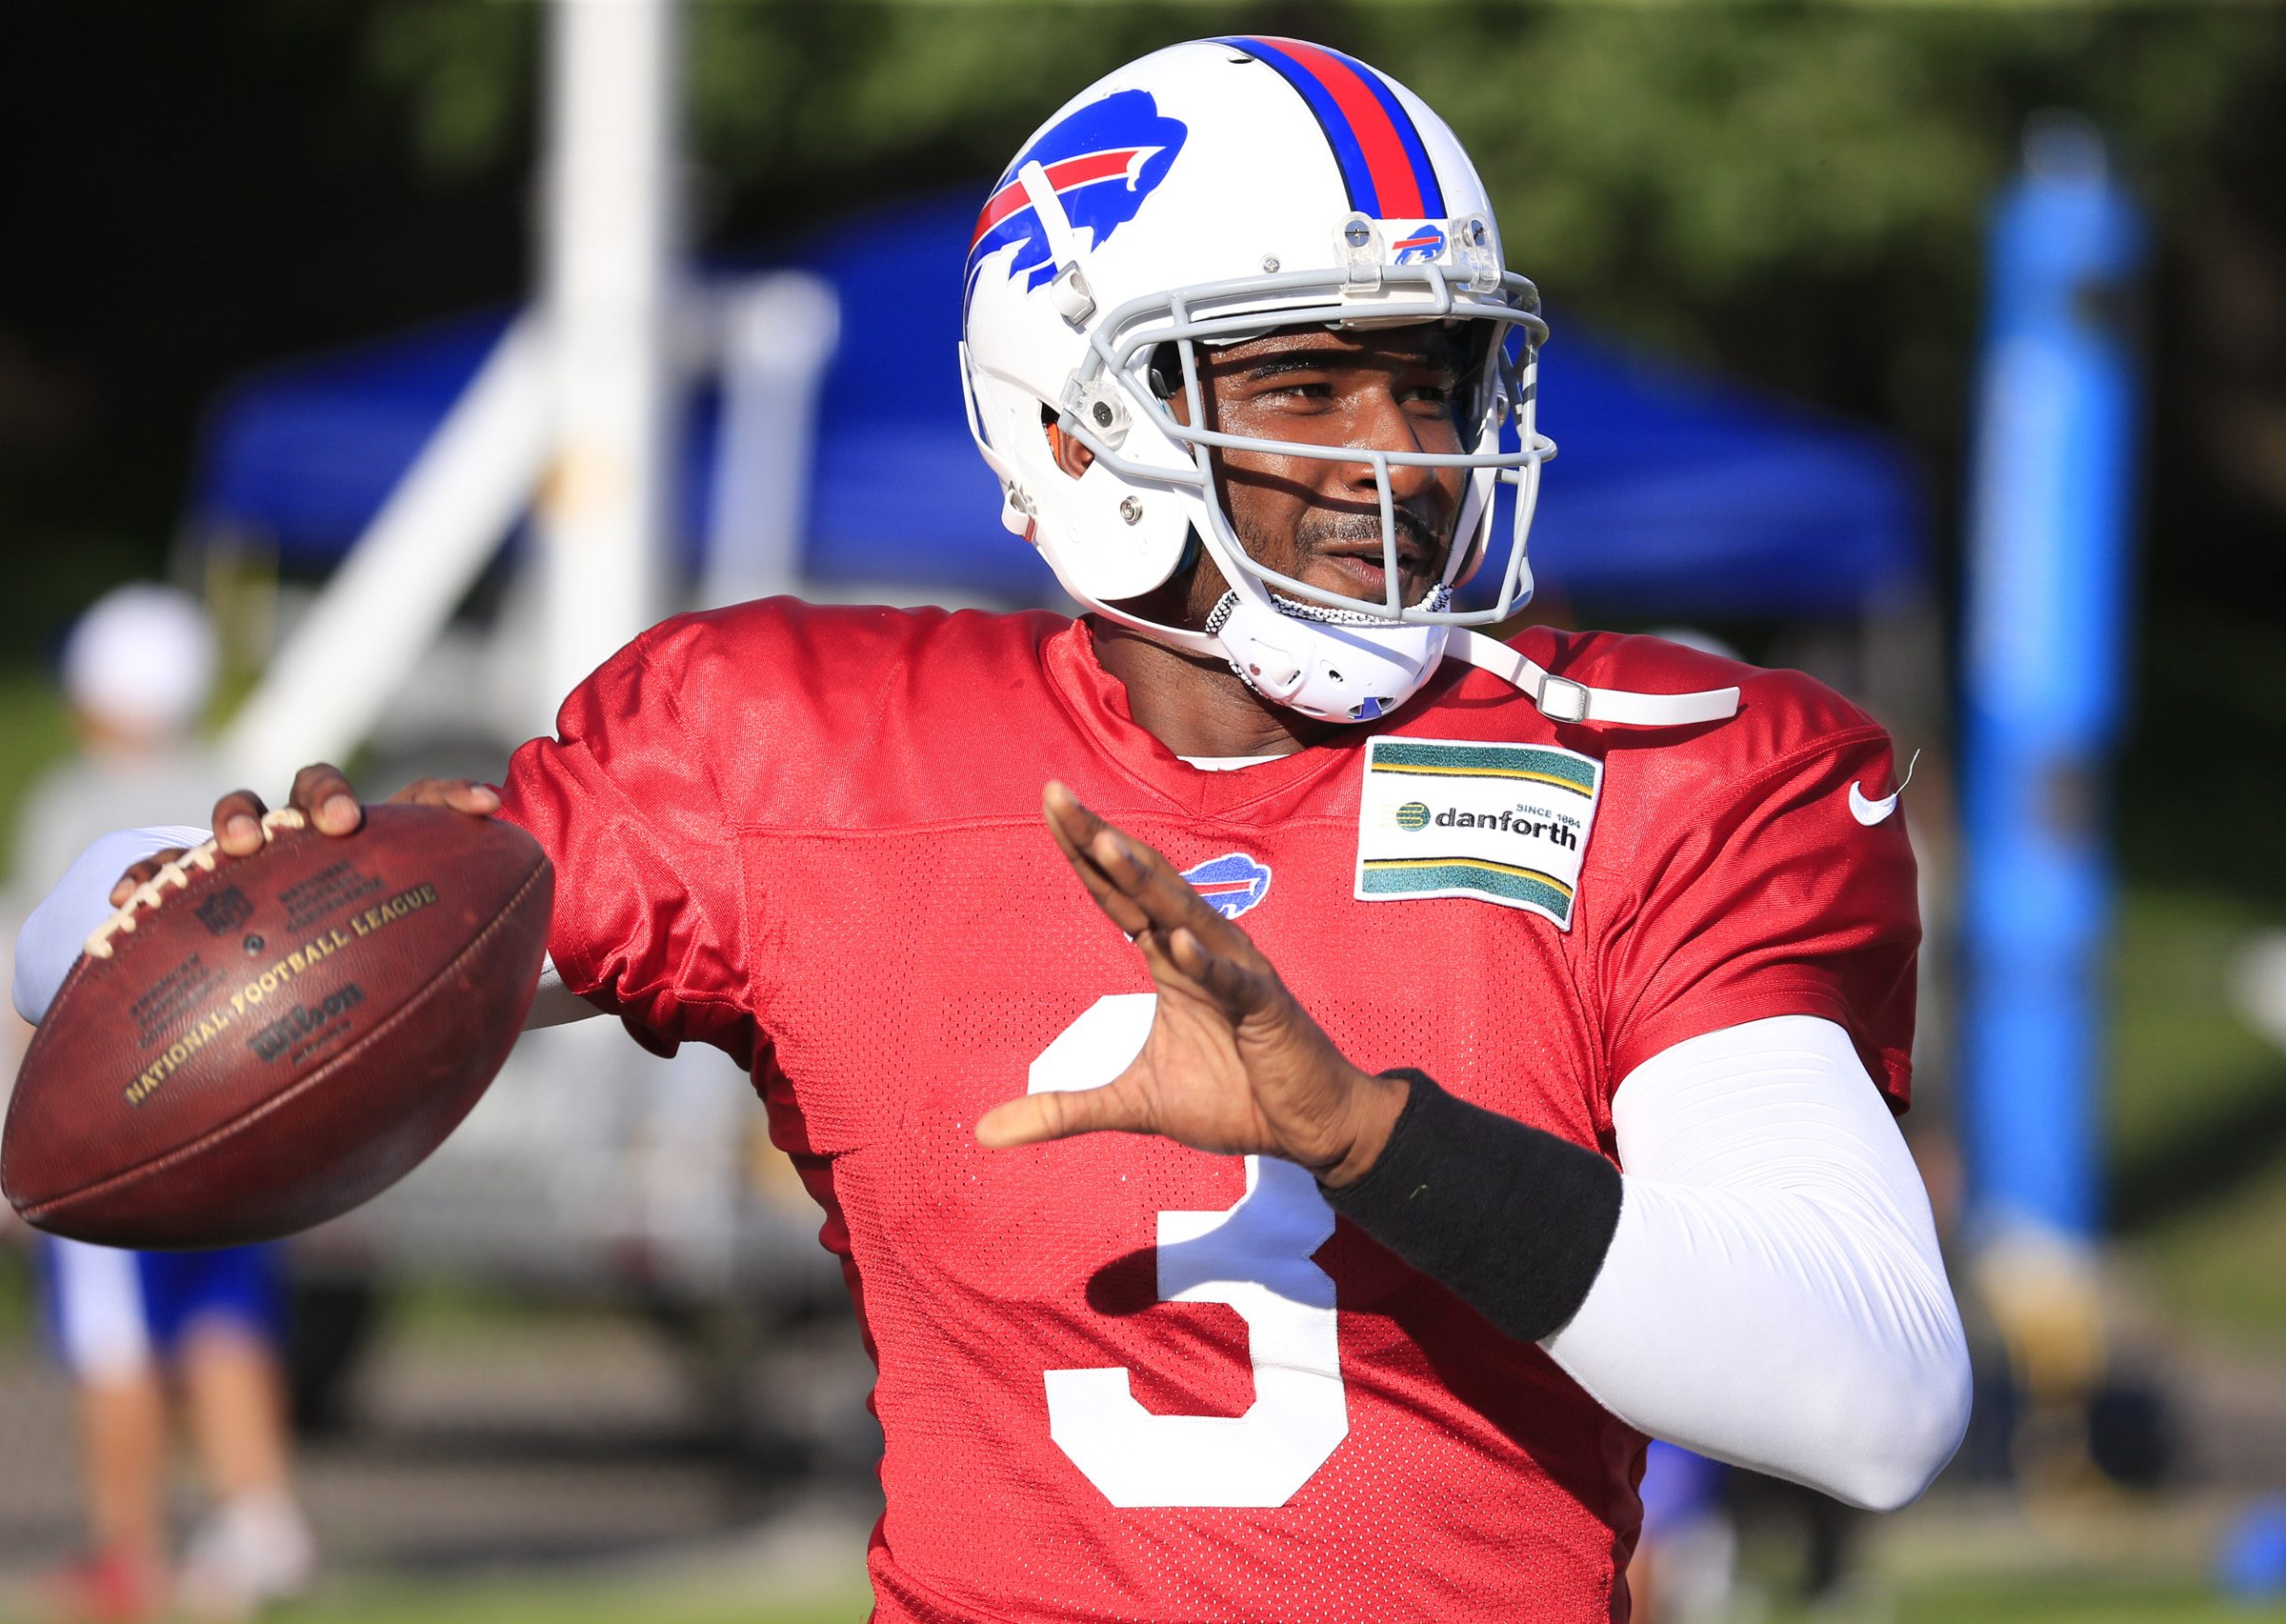 Quarterback EJ Manuel  during training camp at St. John Fisher College. (Harry Scull Jr/Buffalo News)